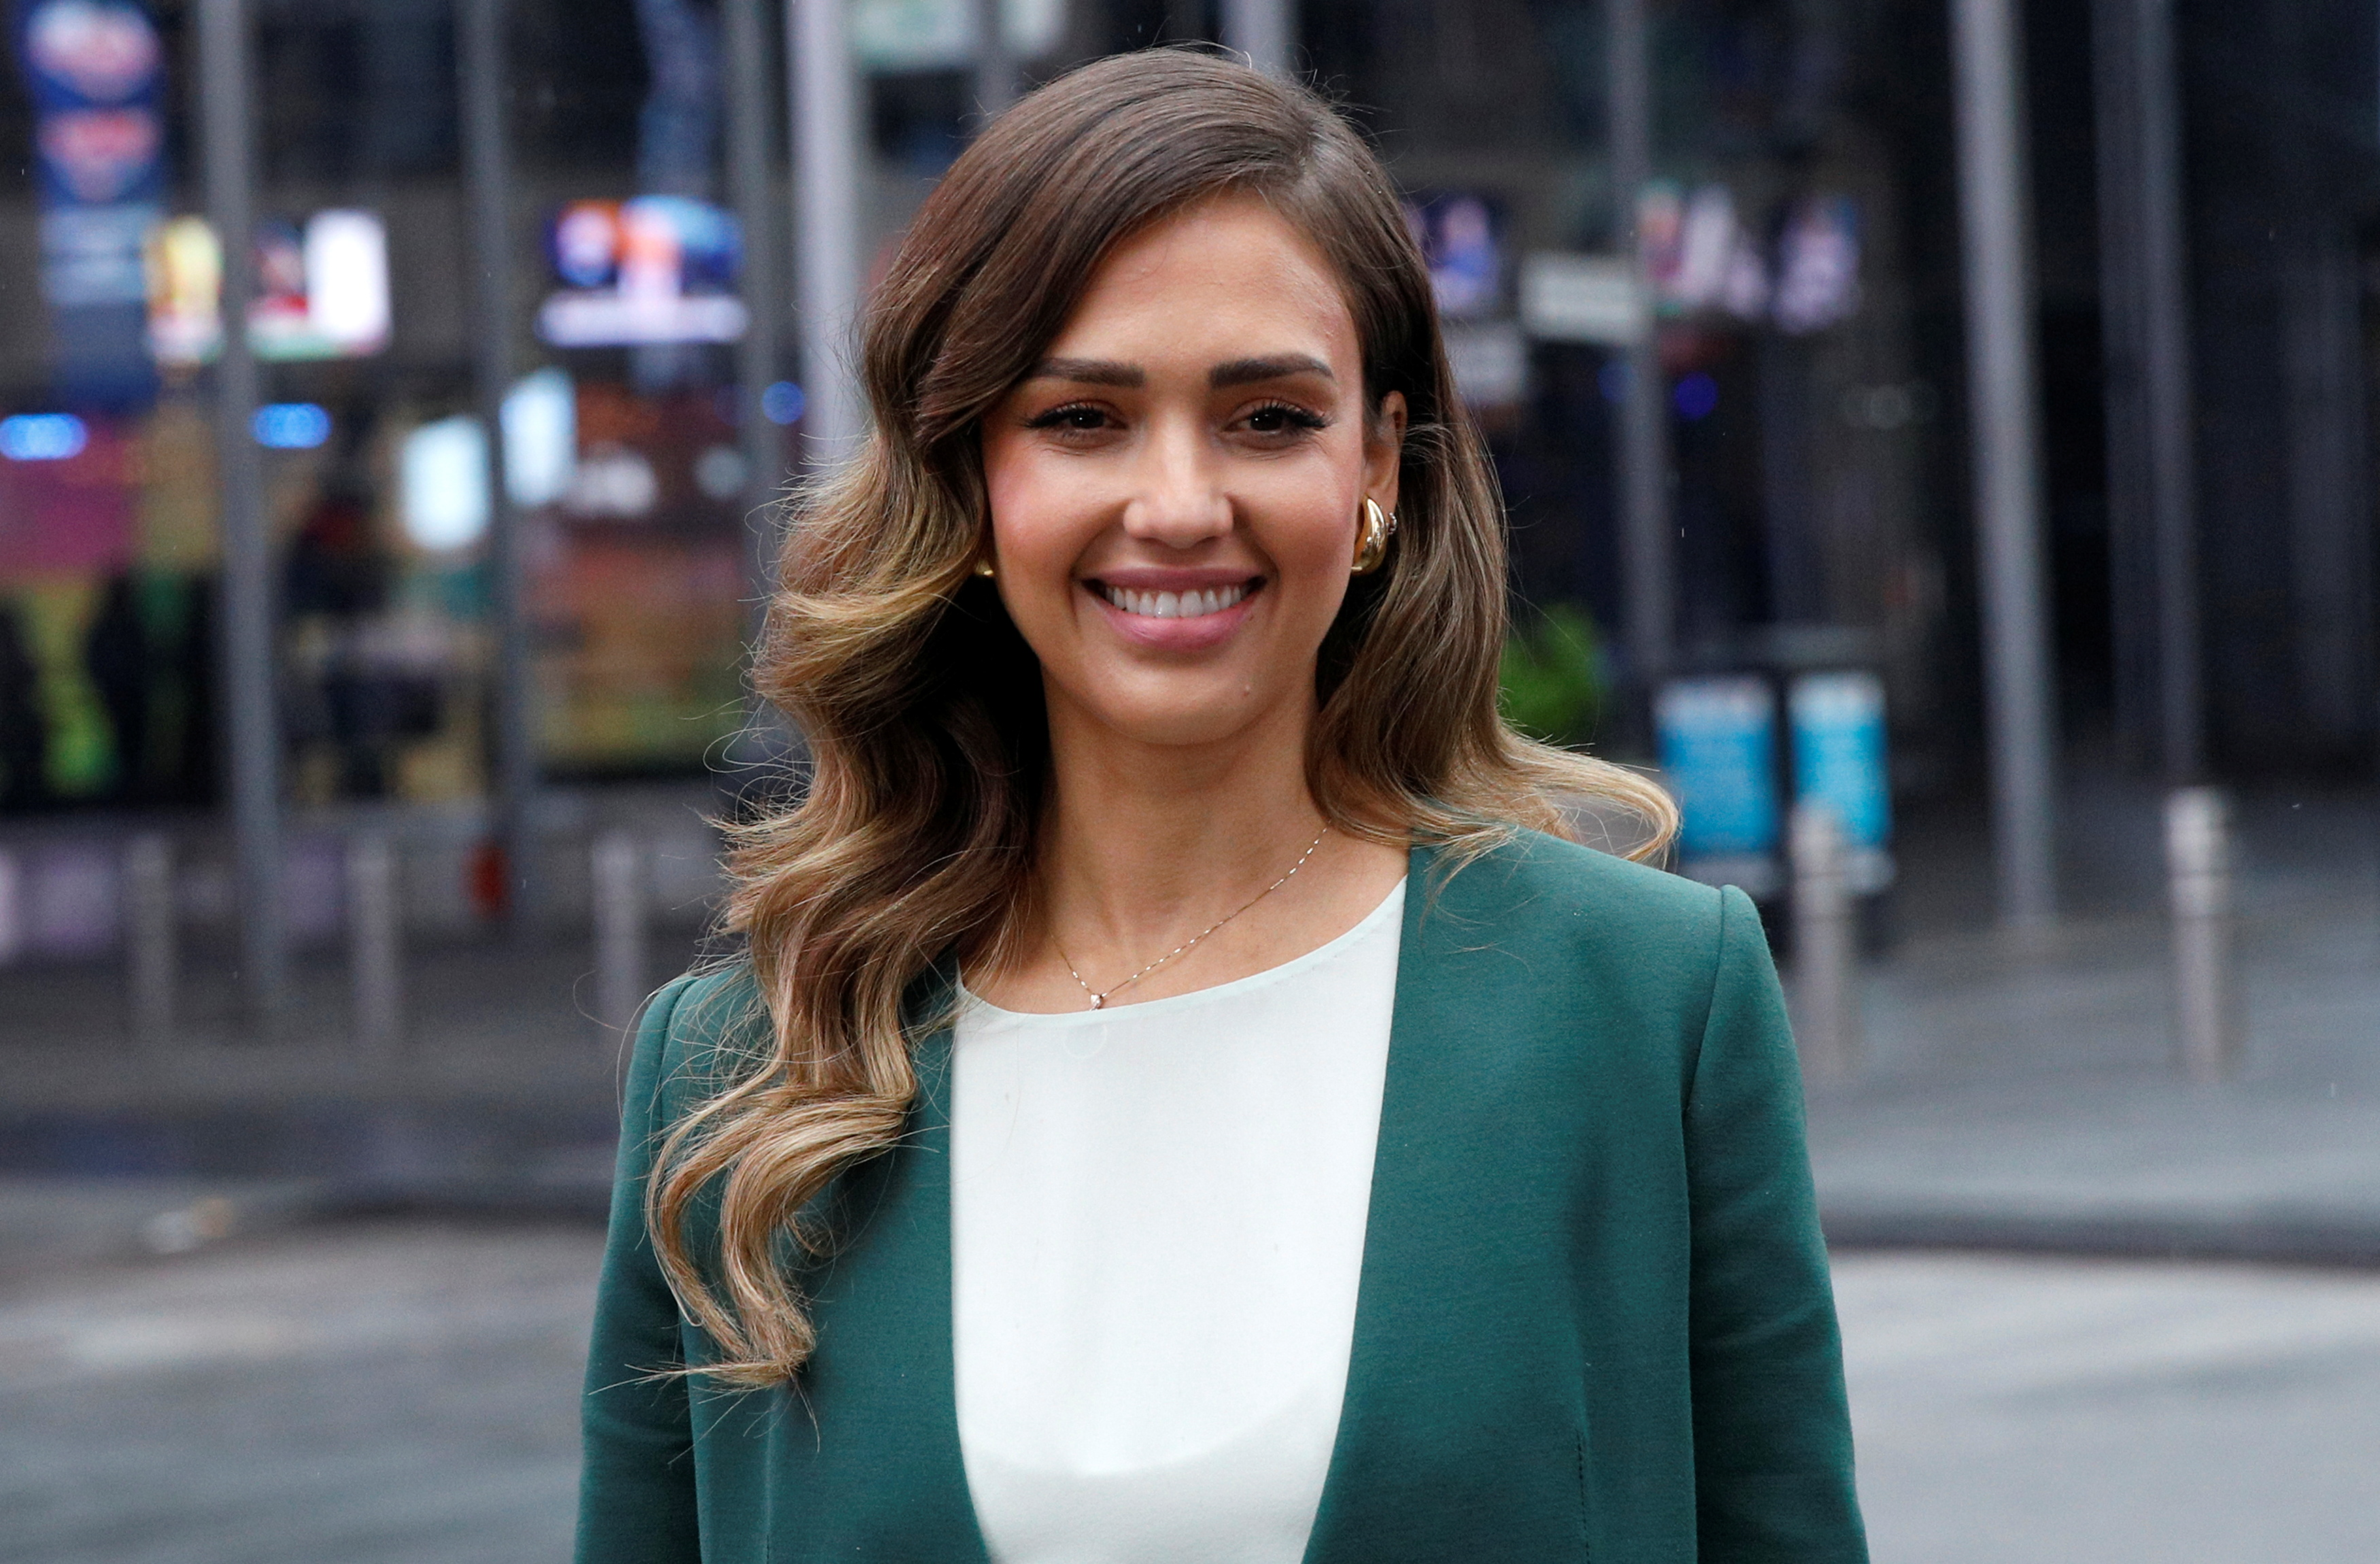 Jessica Alba, actor and businesswoman, poses during the IPO of The Honest Co at the Nasdaq Market site in New York City, May 5, 2021. REUTERS/Brendan McDermid